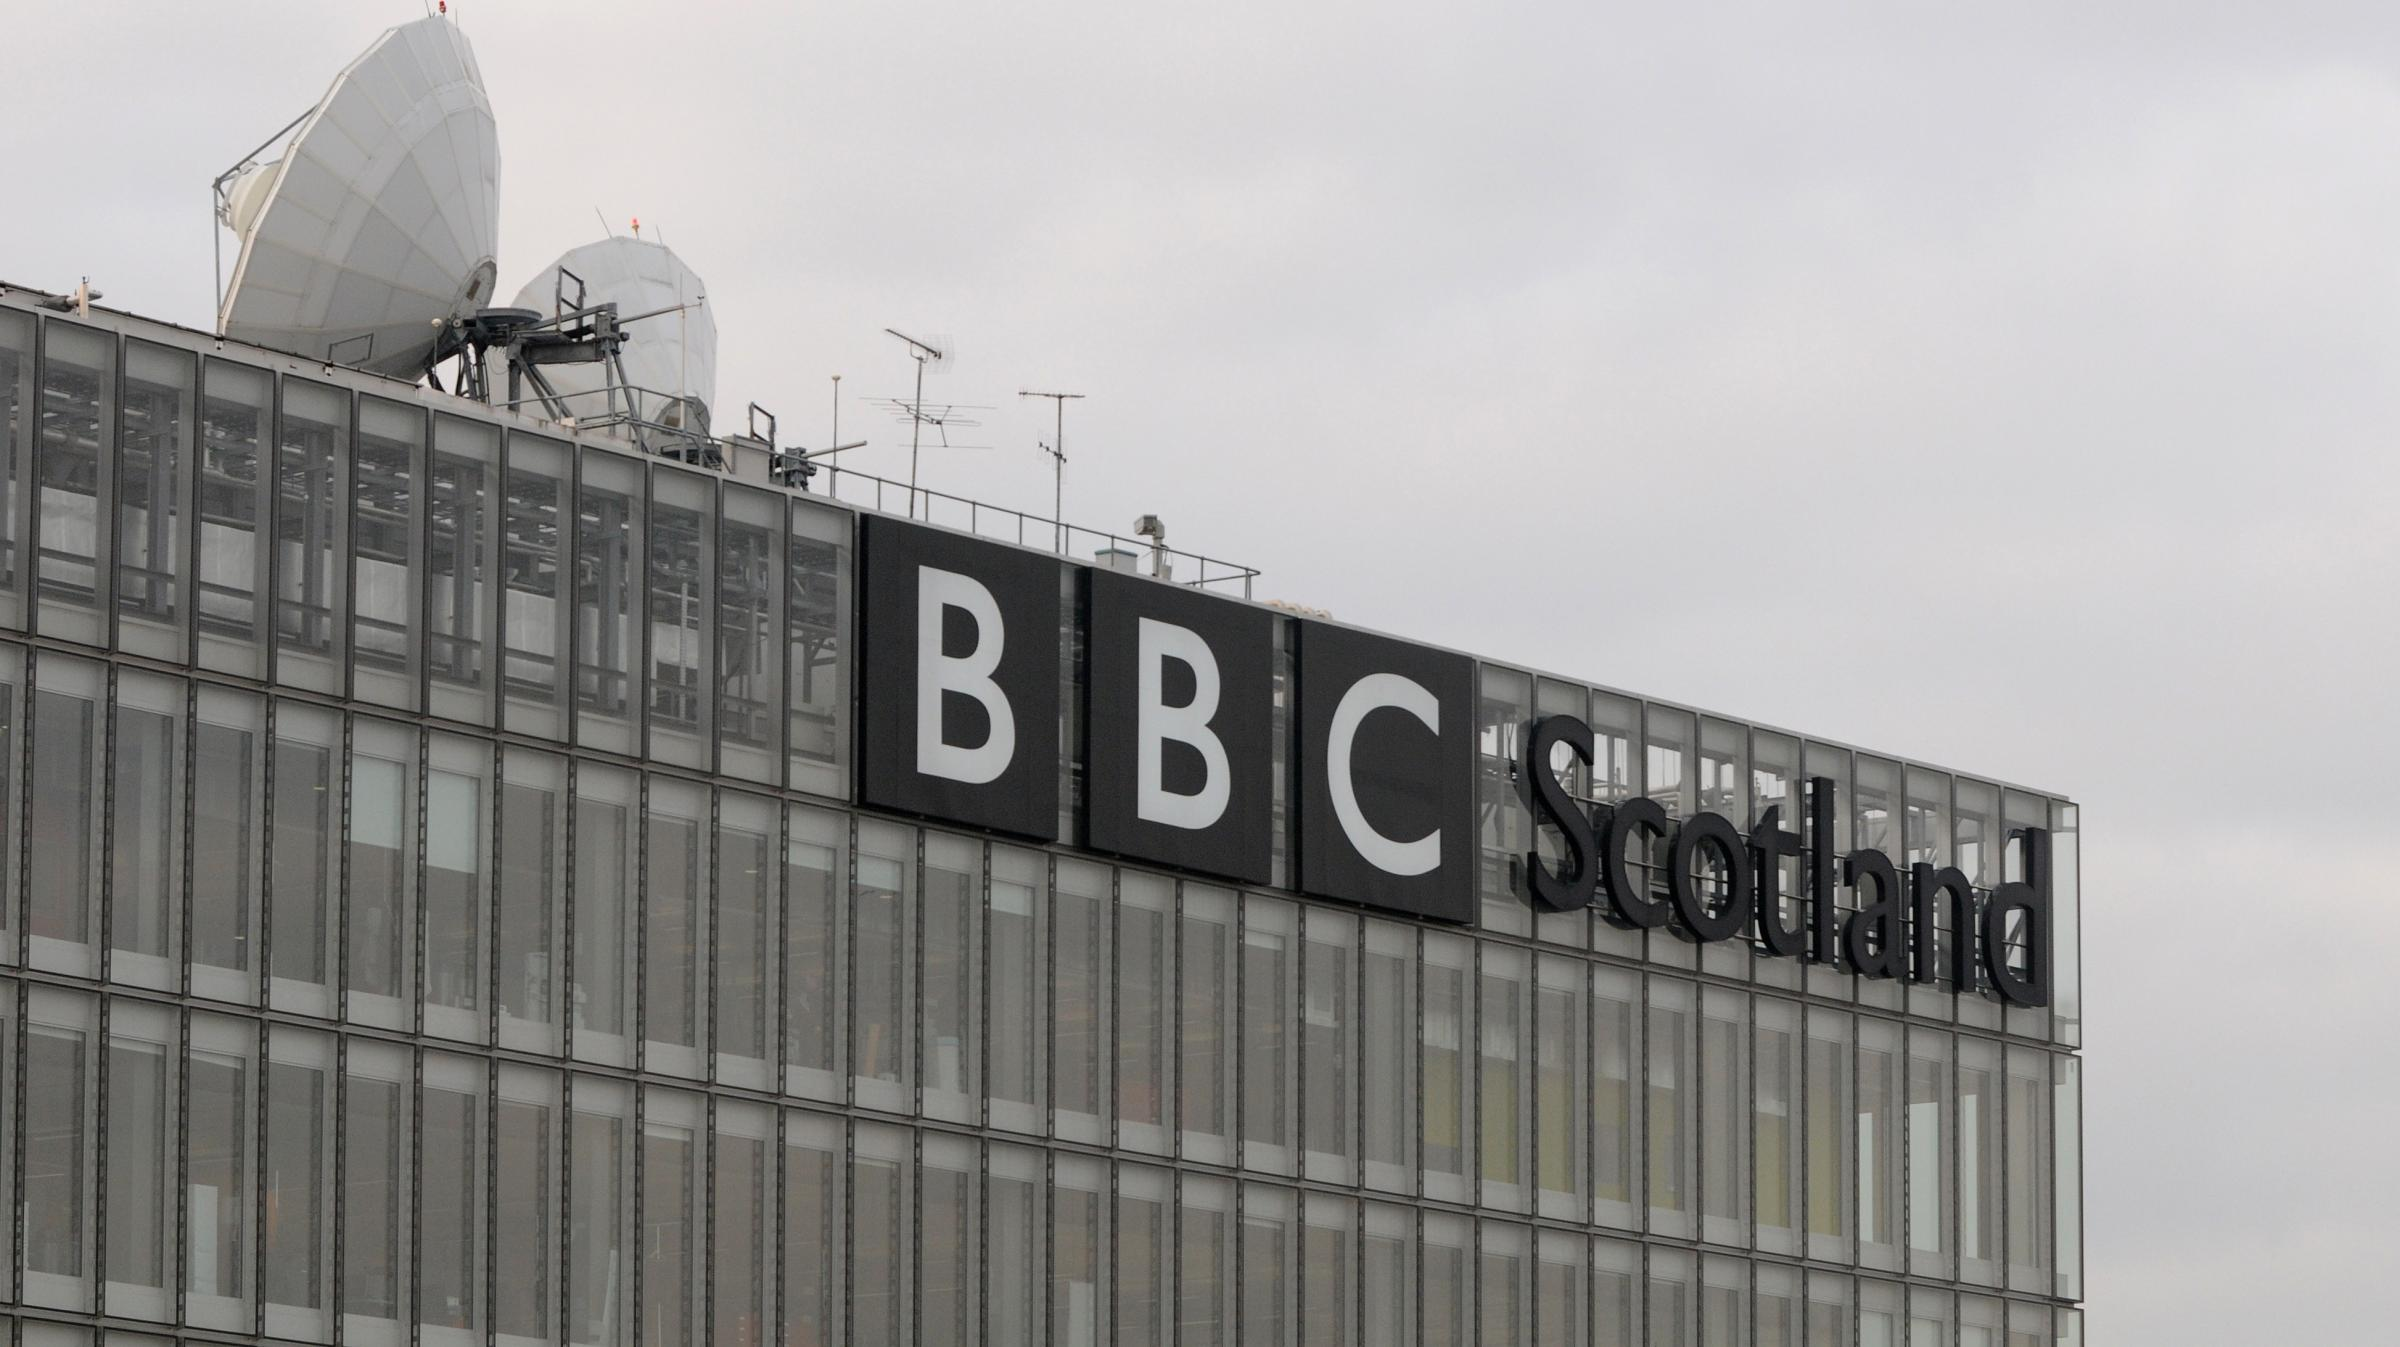 New BBC Scotland channel set for launch